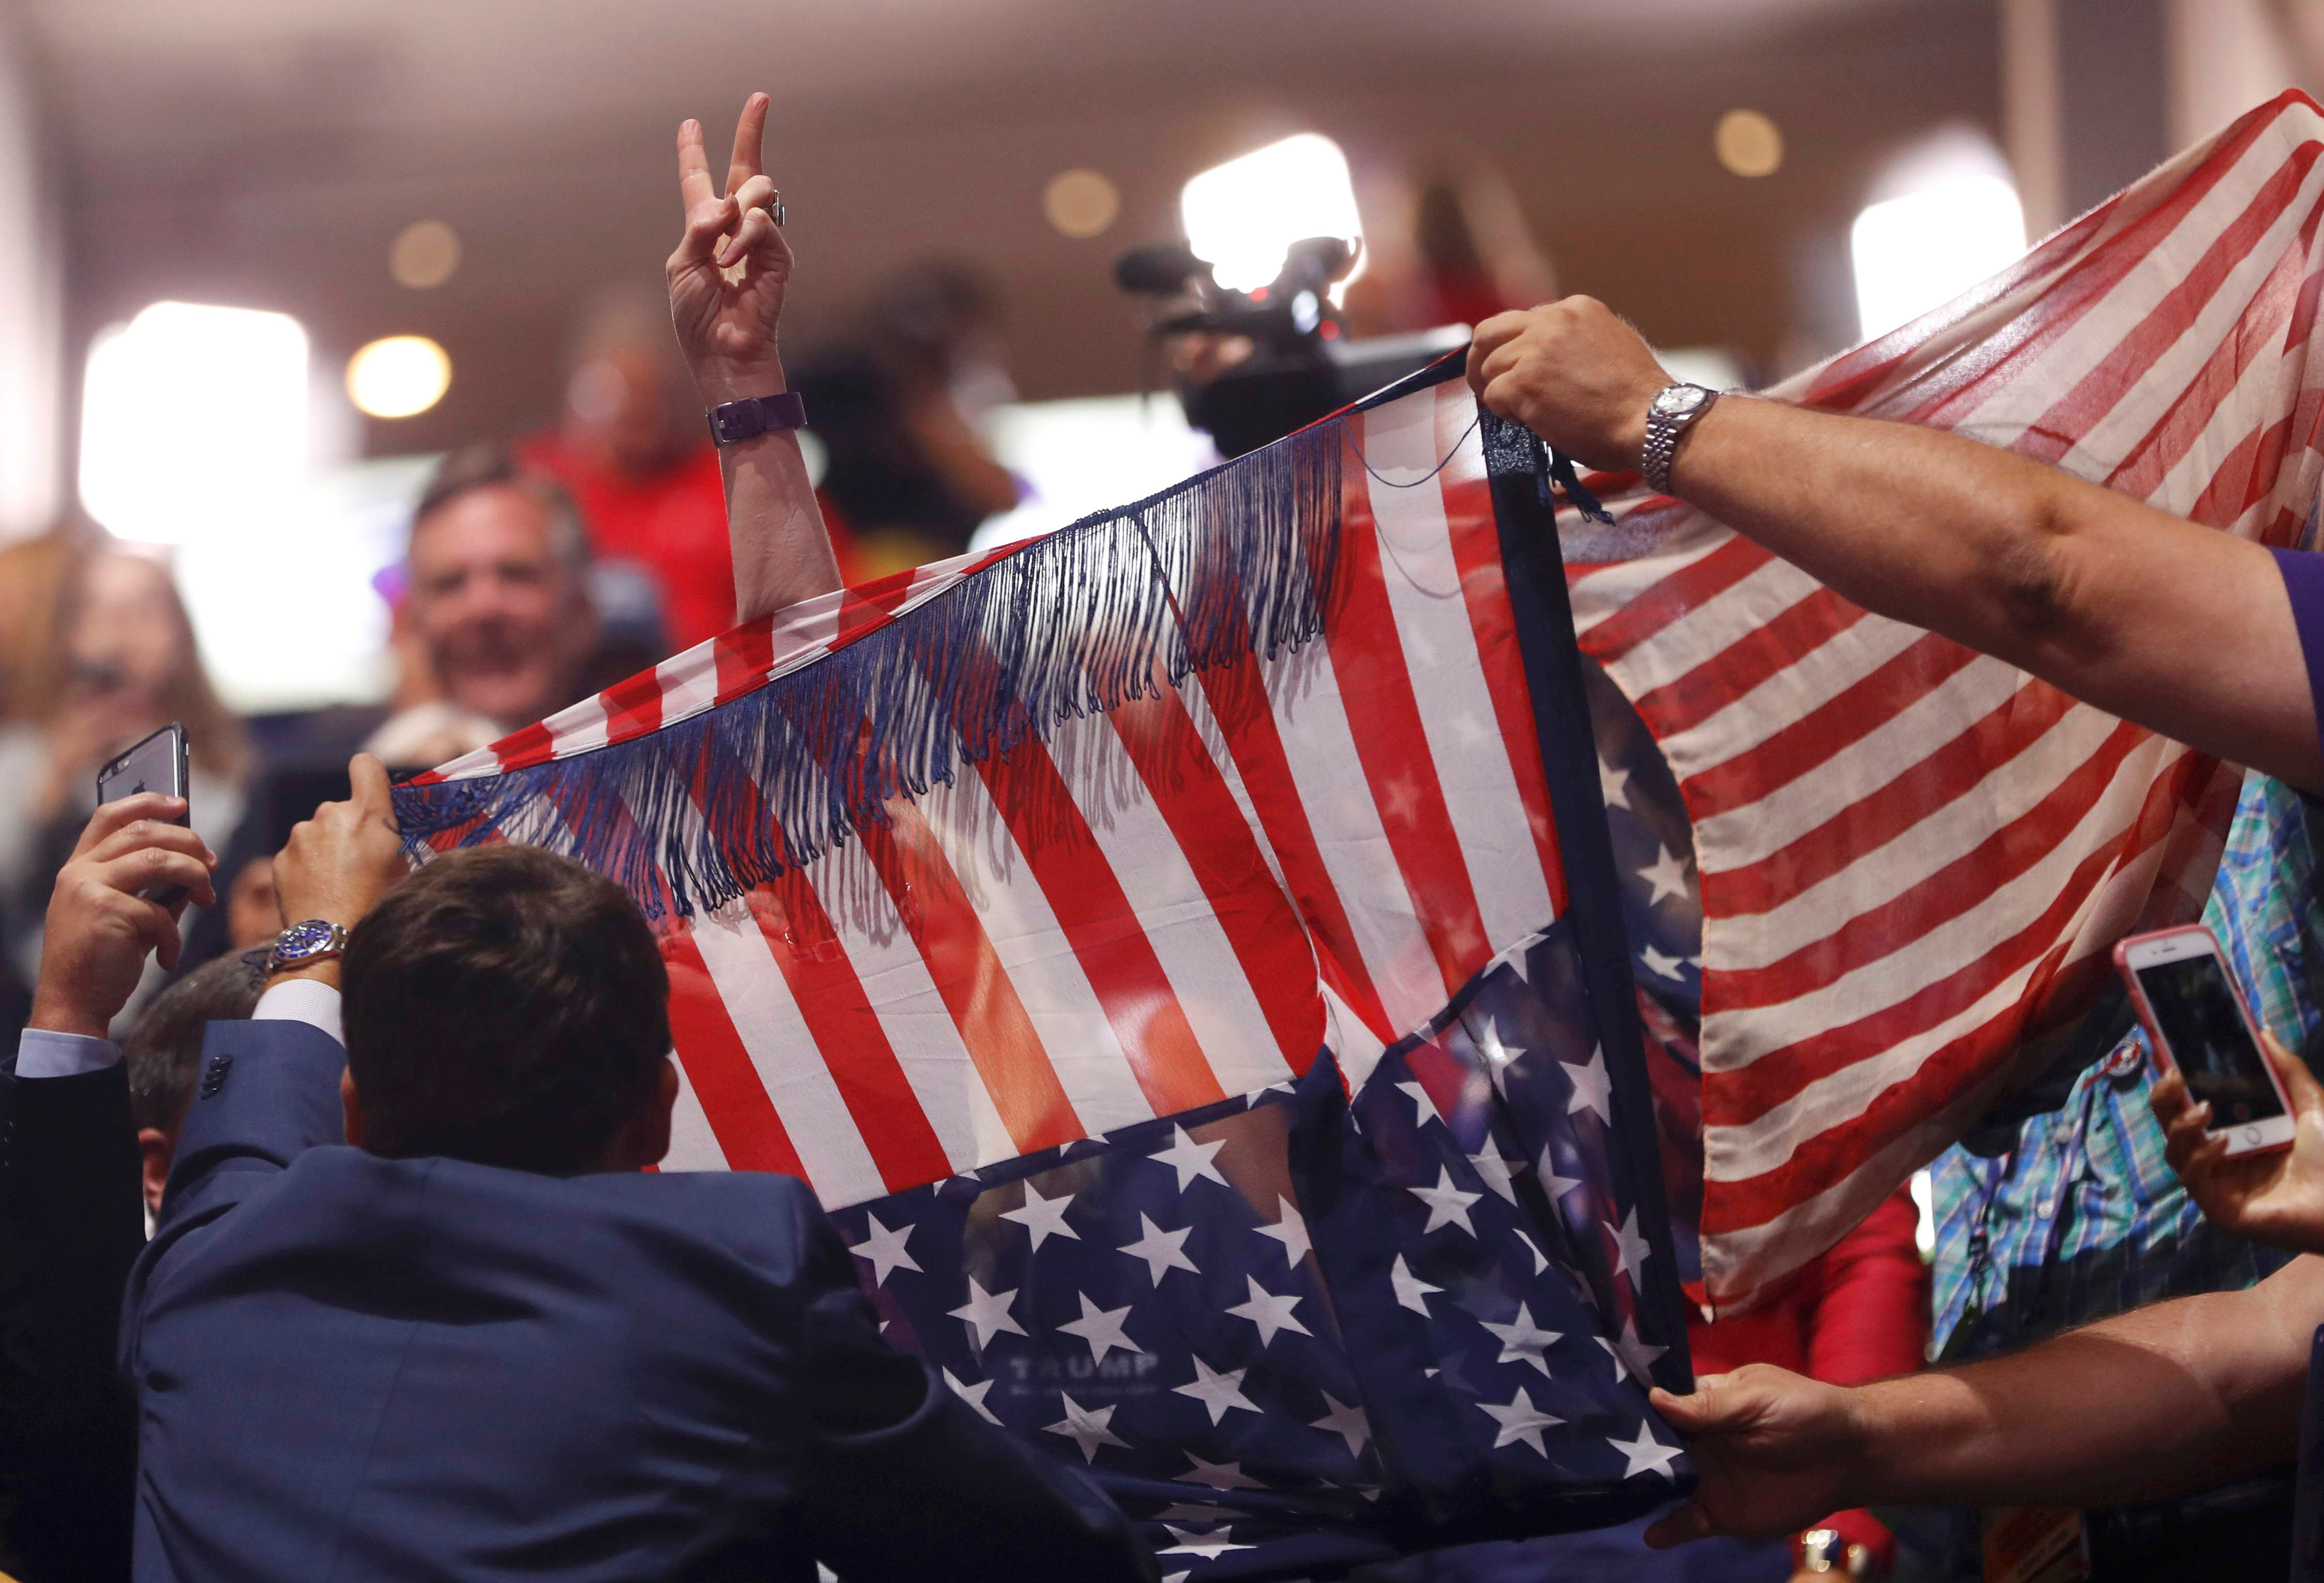 Supporters of Donald Trump attempt to obscure a protestor from the activist group Code Pink, who is holding an anti-racism and anti-hate banner, as she interrupts the proceedings during the second day of the Republican National Convention in Cleveland, Ohio, on July 19, 2016.